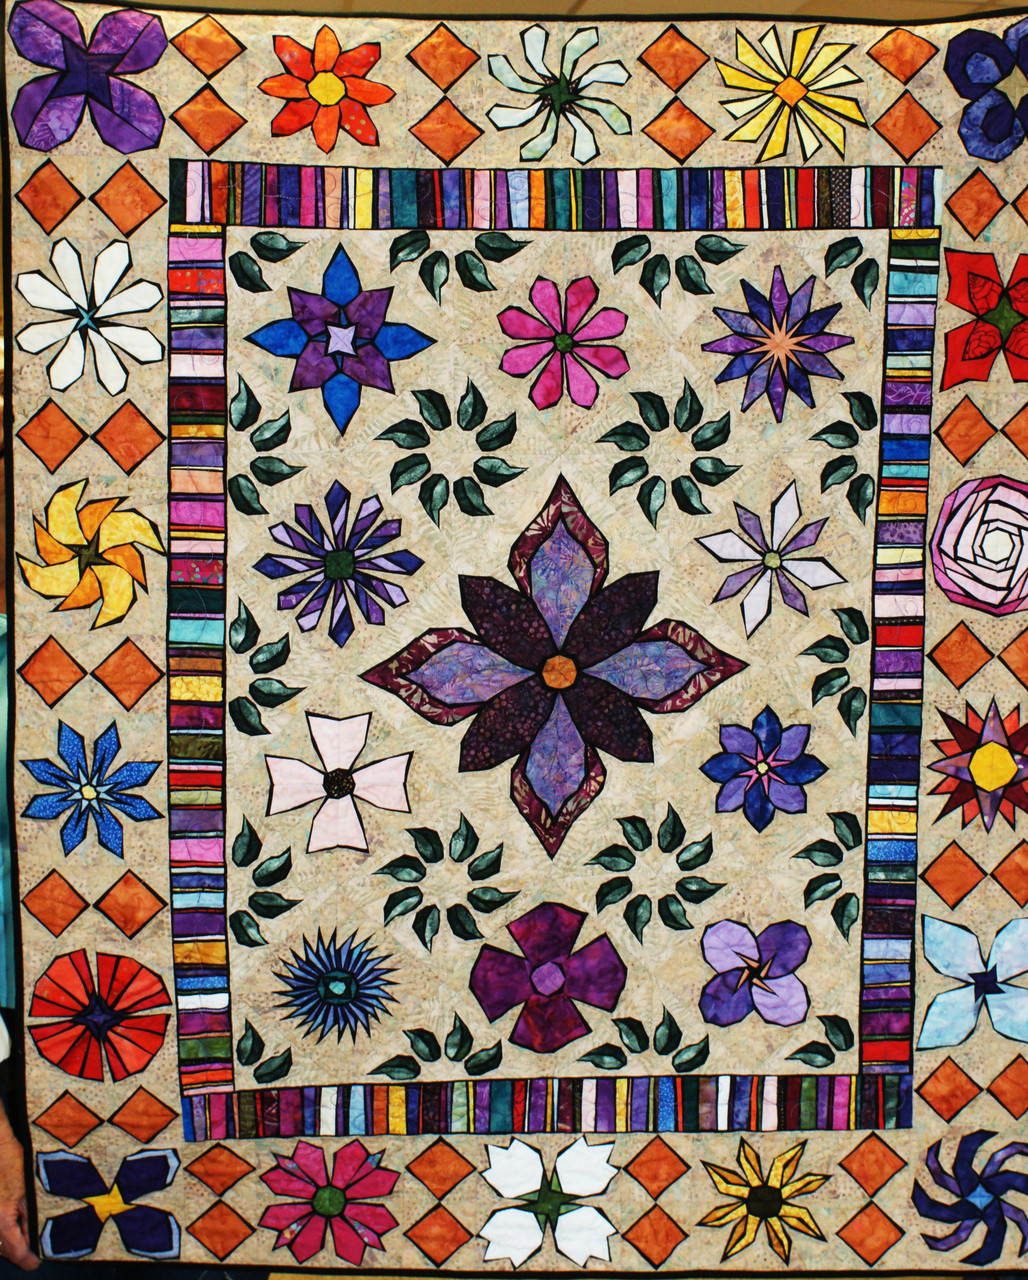 Fresh Cut Flowers Quilt Foundation Paper Piecing Pattern For 2 Quilts Size 84 X 102 Paperpiecedquilting Com